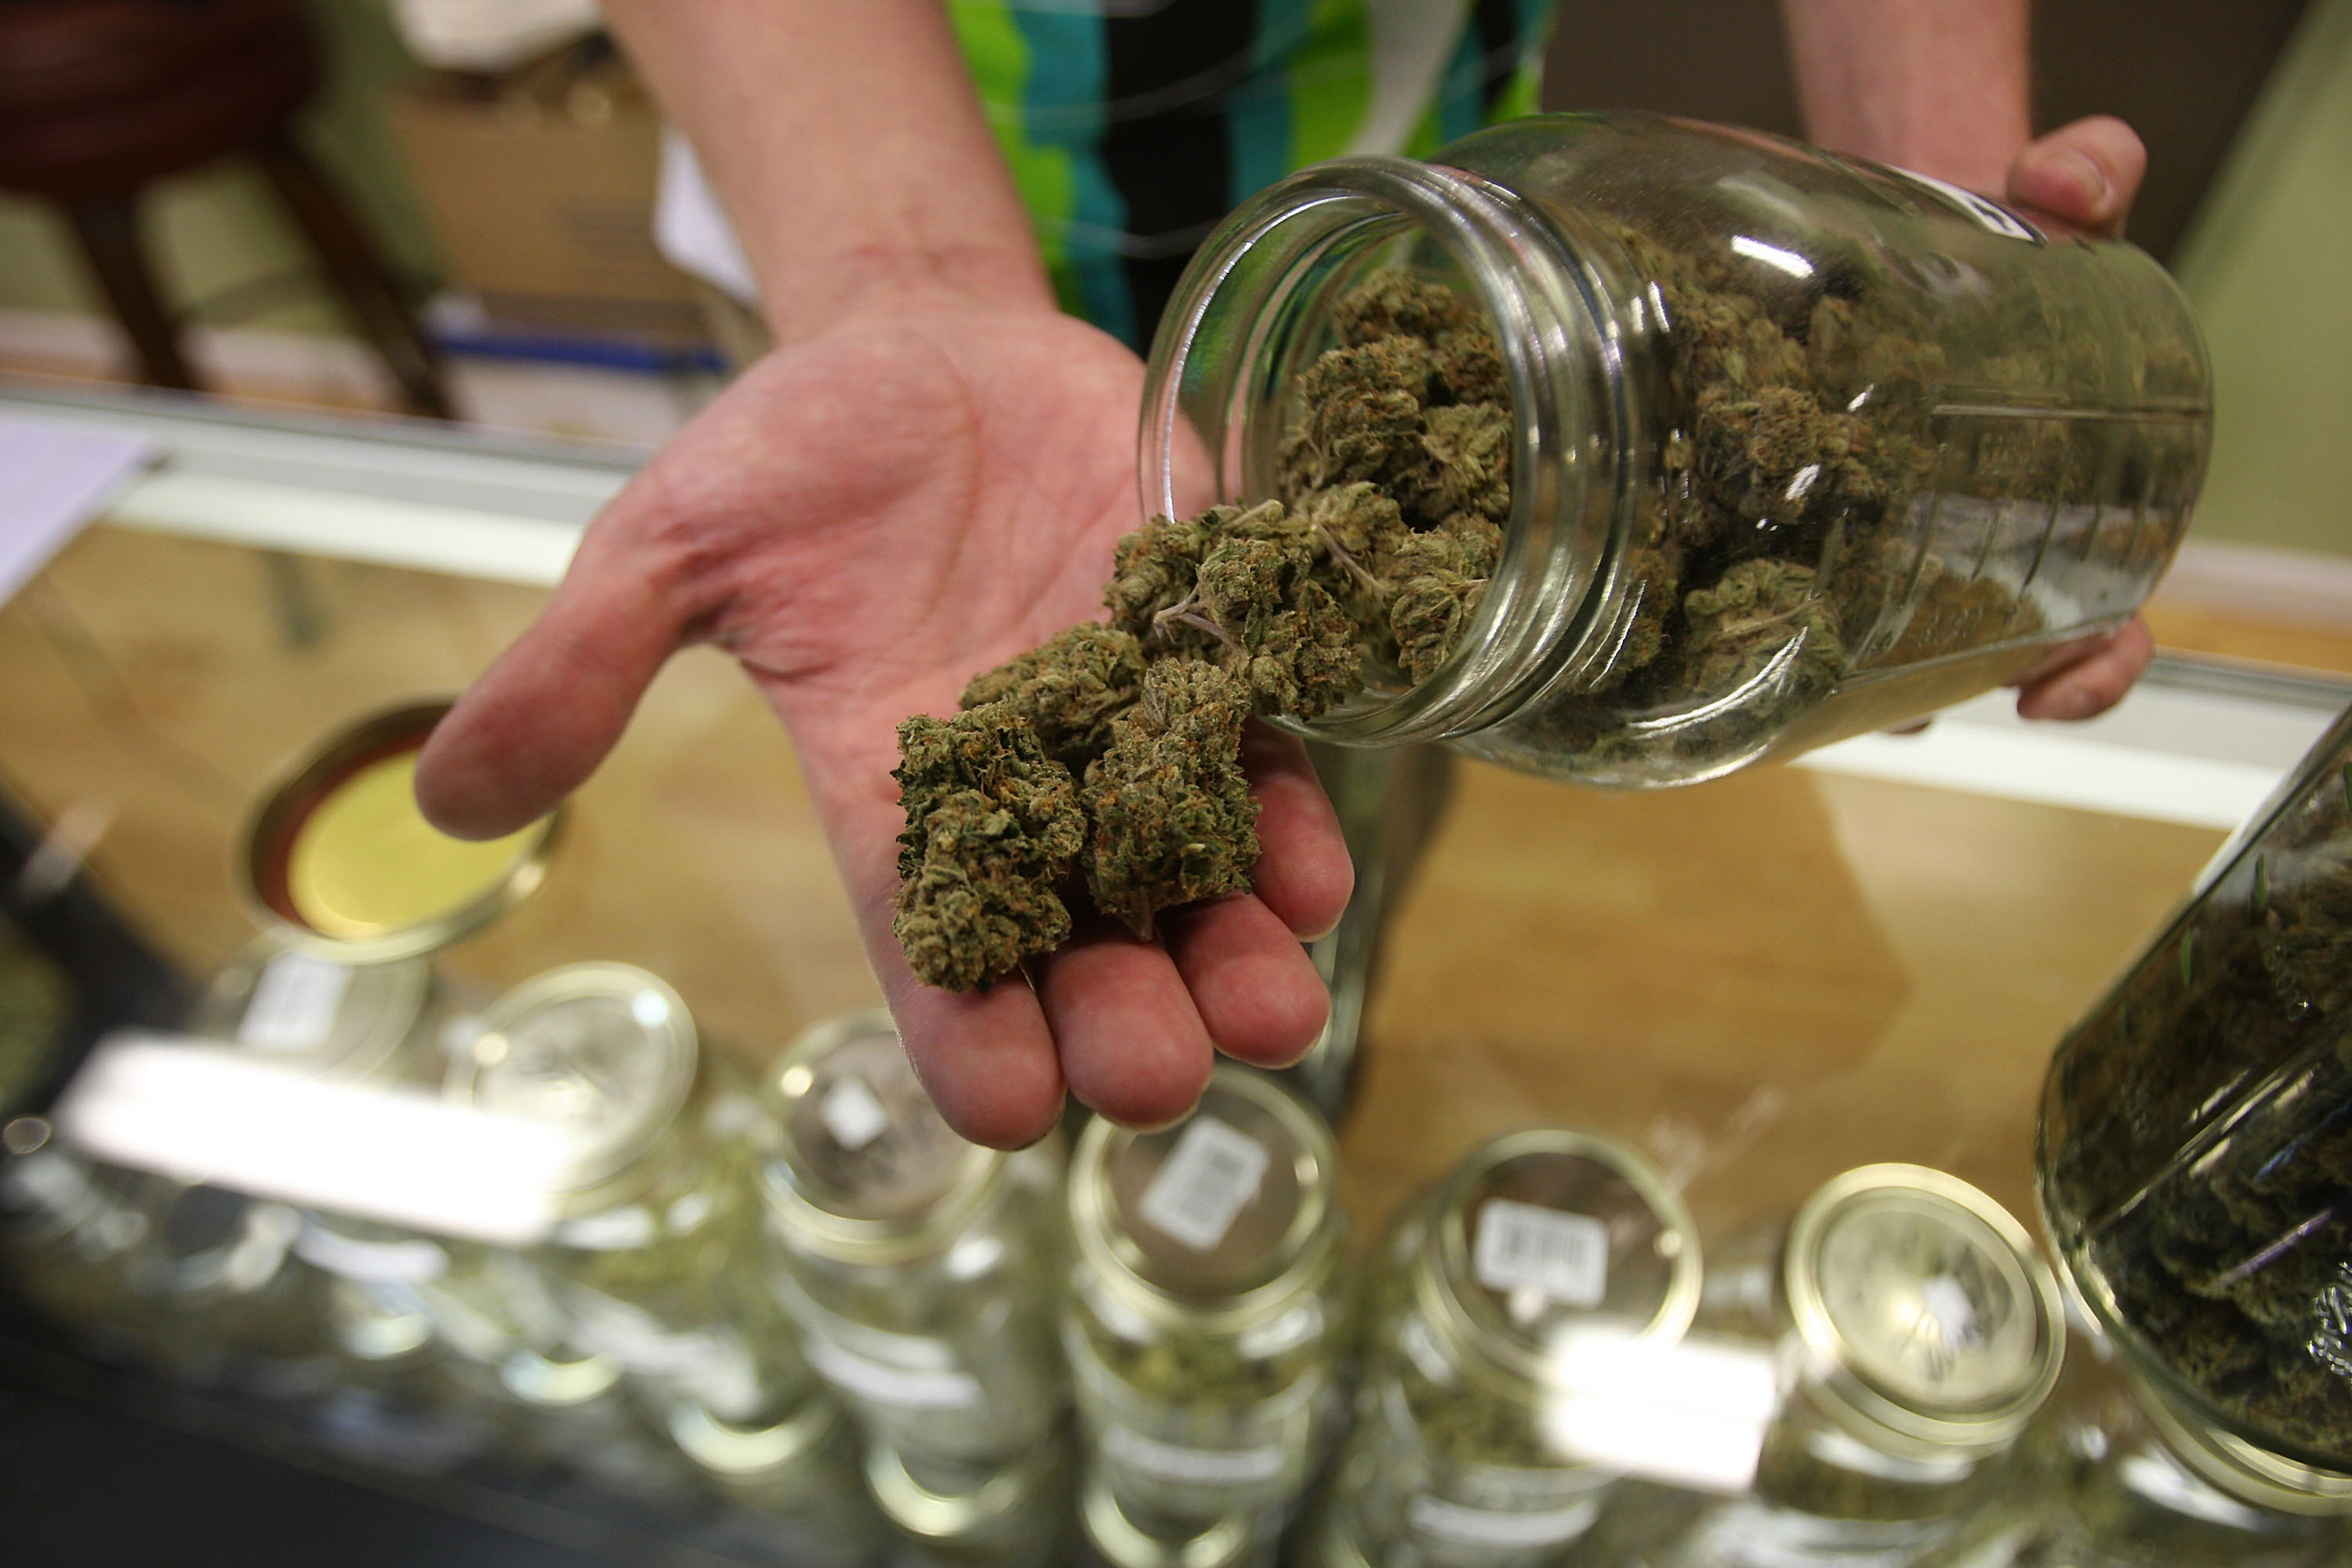 Marijuana *might* not be safe to smoke because of bacteria and fungus, according to research